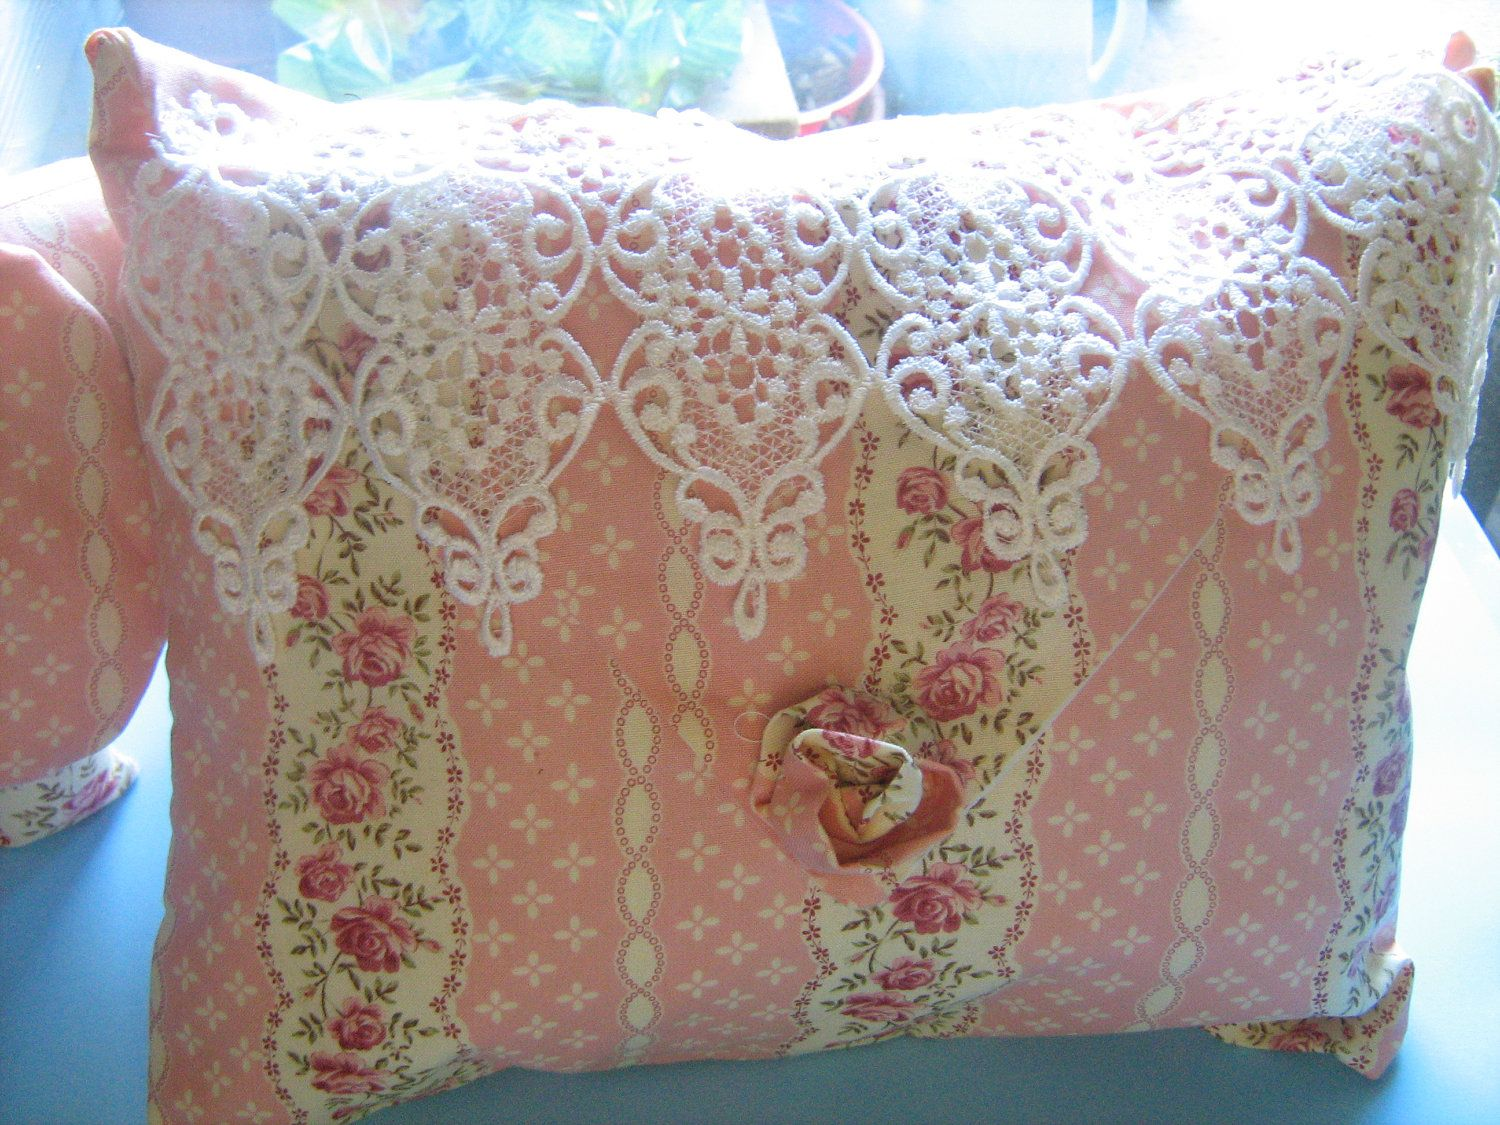 couture landing lights chic ashwell pillow hero rachel shabby pillows spring decor pages